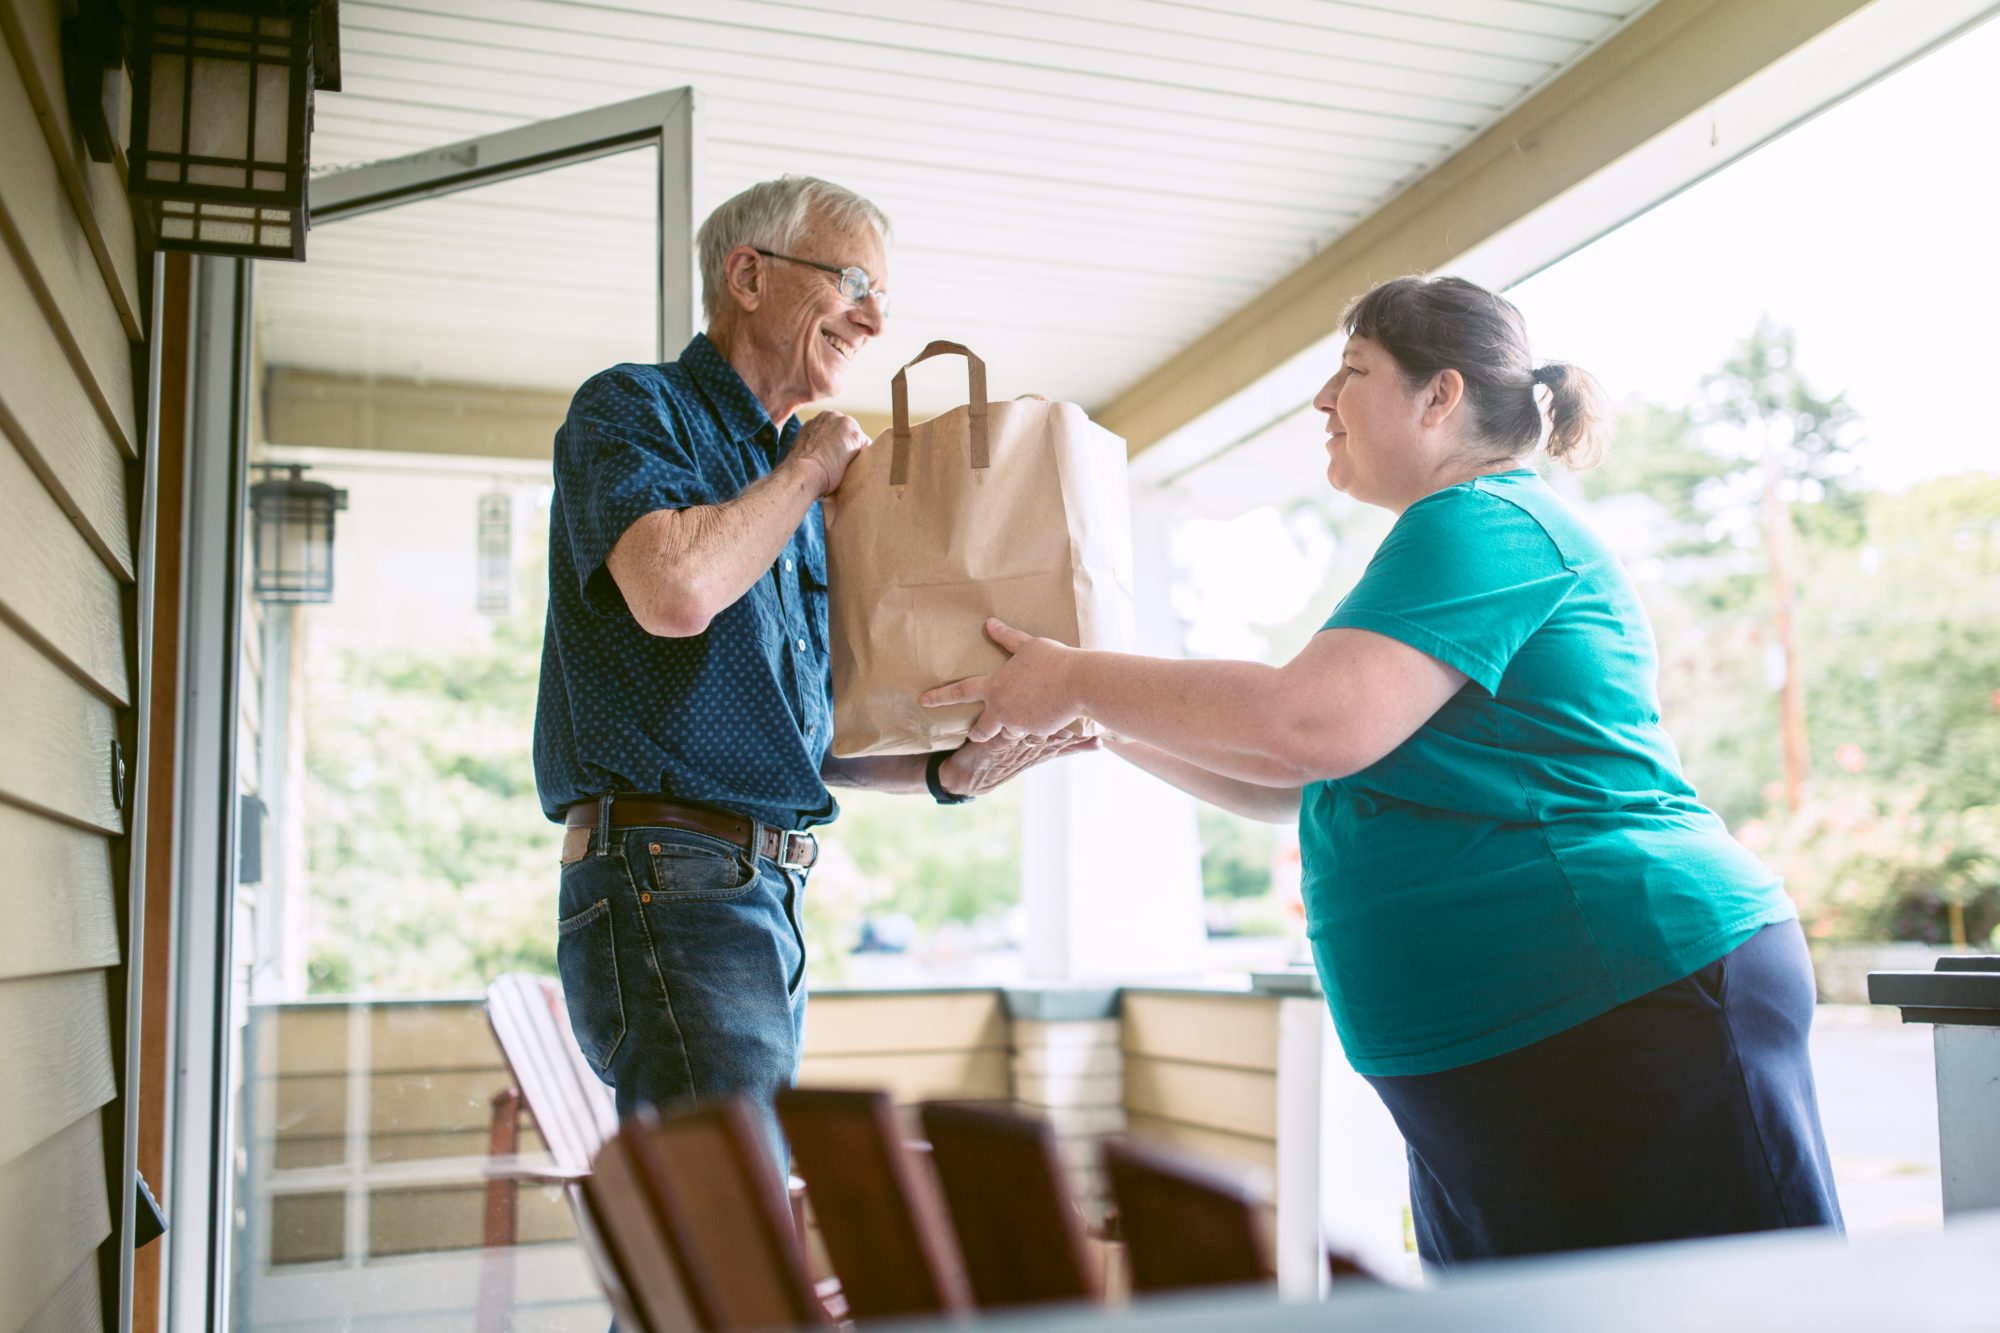 Grocery Delivery Is Changing the Way We Shop — But It's Leaving Many People Behind, Too